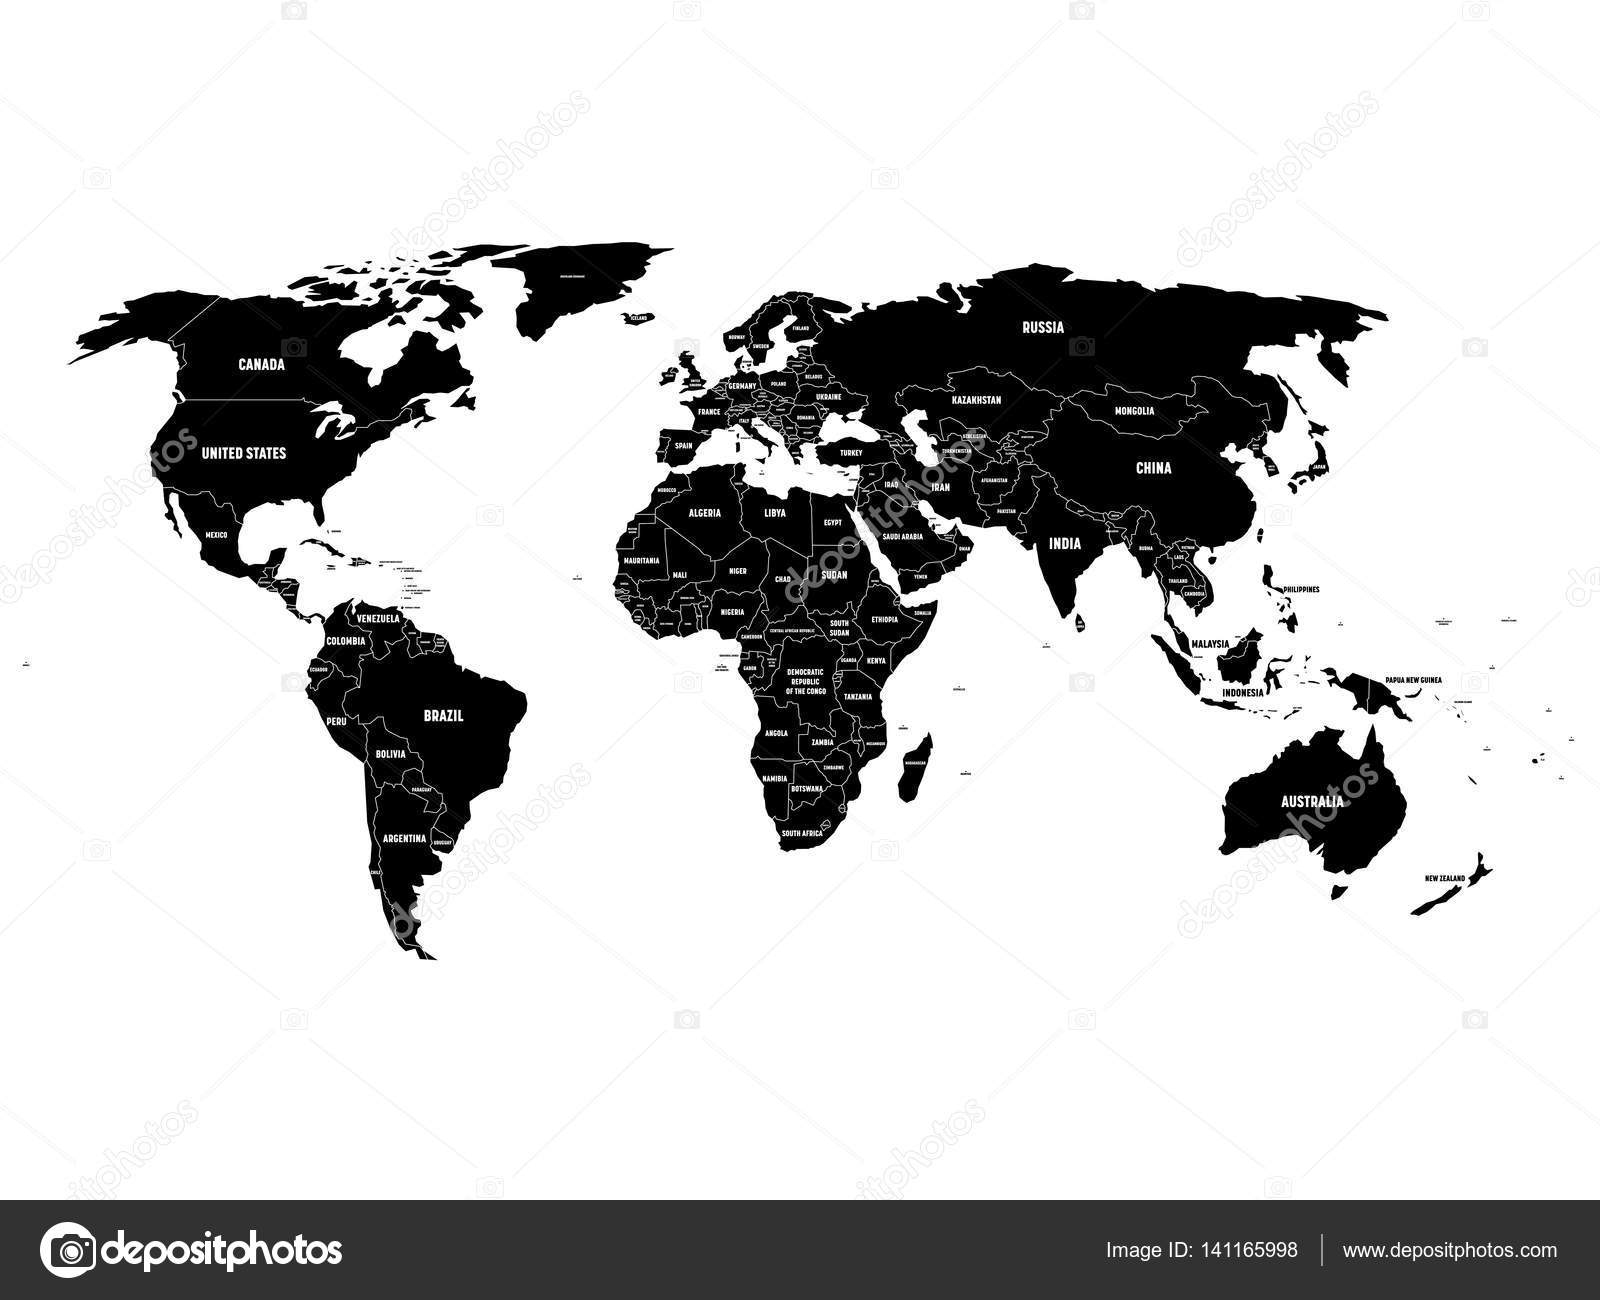 Black political world map with country borders and white state name black political world map with country borders and white state name labels hand drawn simplified gumiabroncs Images